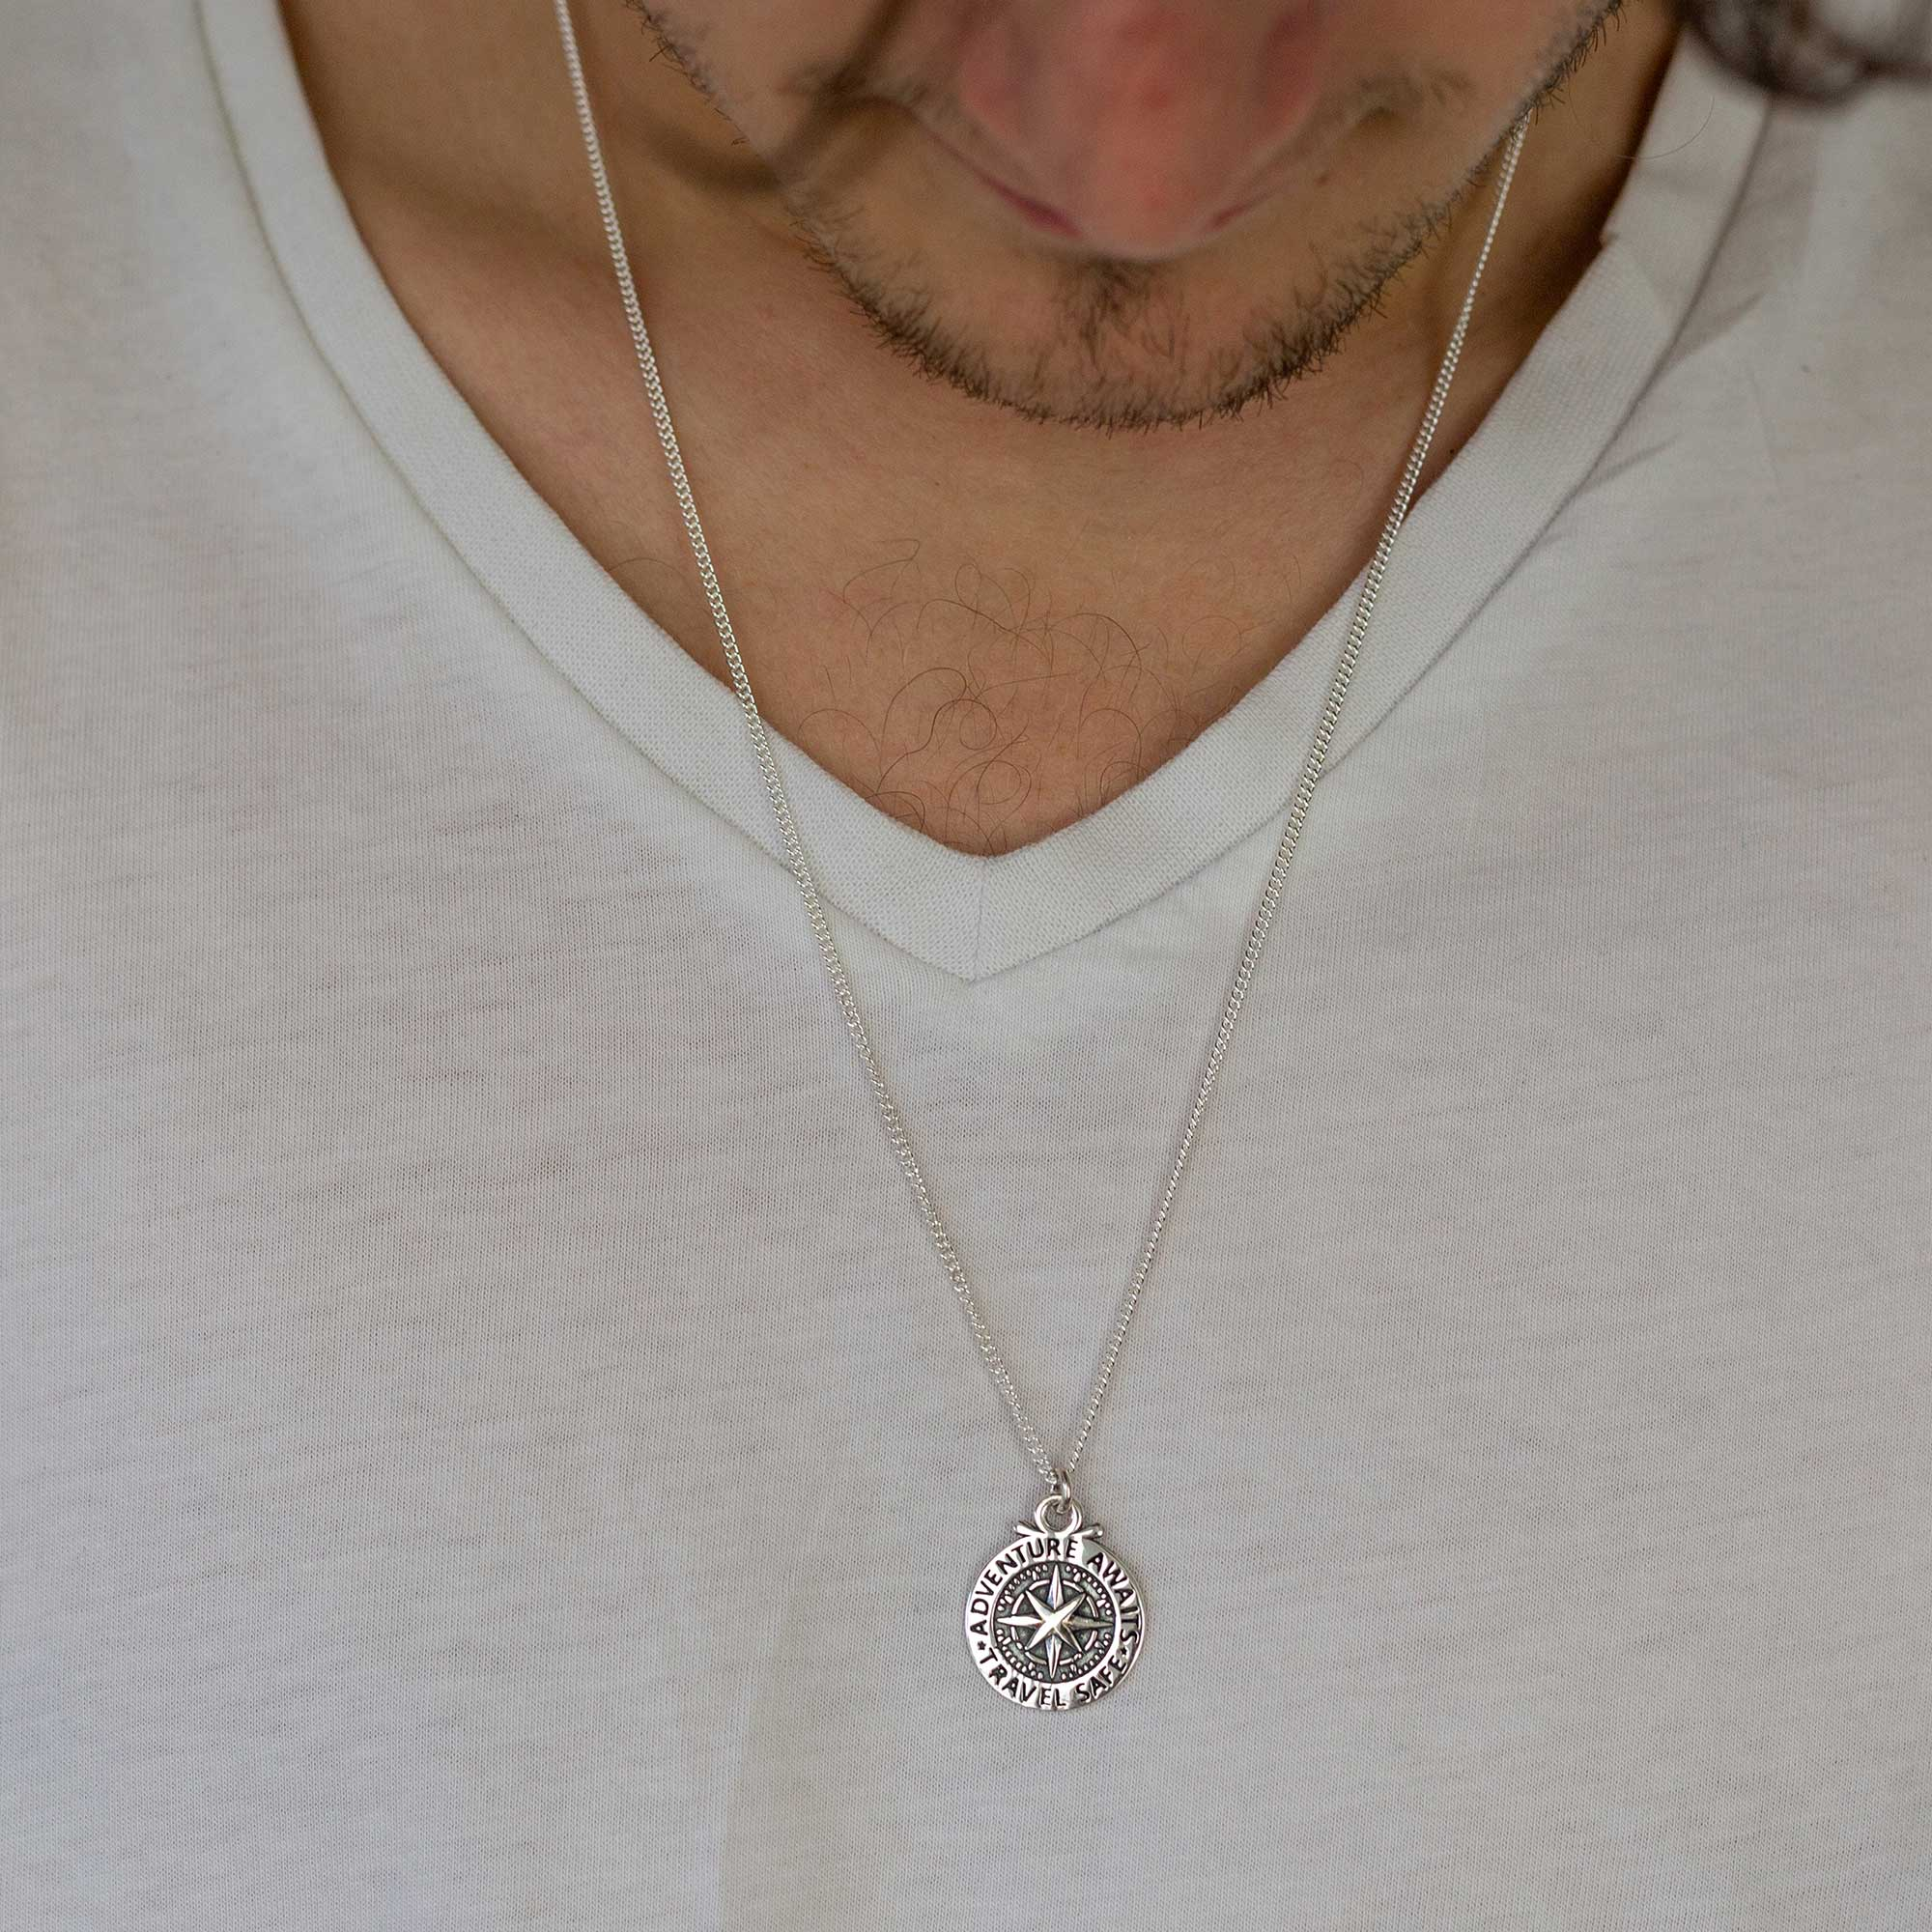 large compass mens necklace travel safe adventure awaits bespoke engraved recycled silver